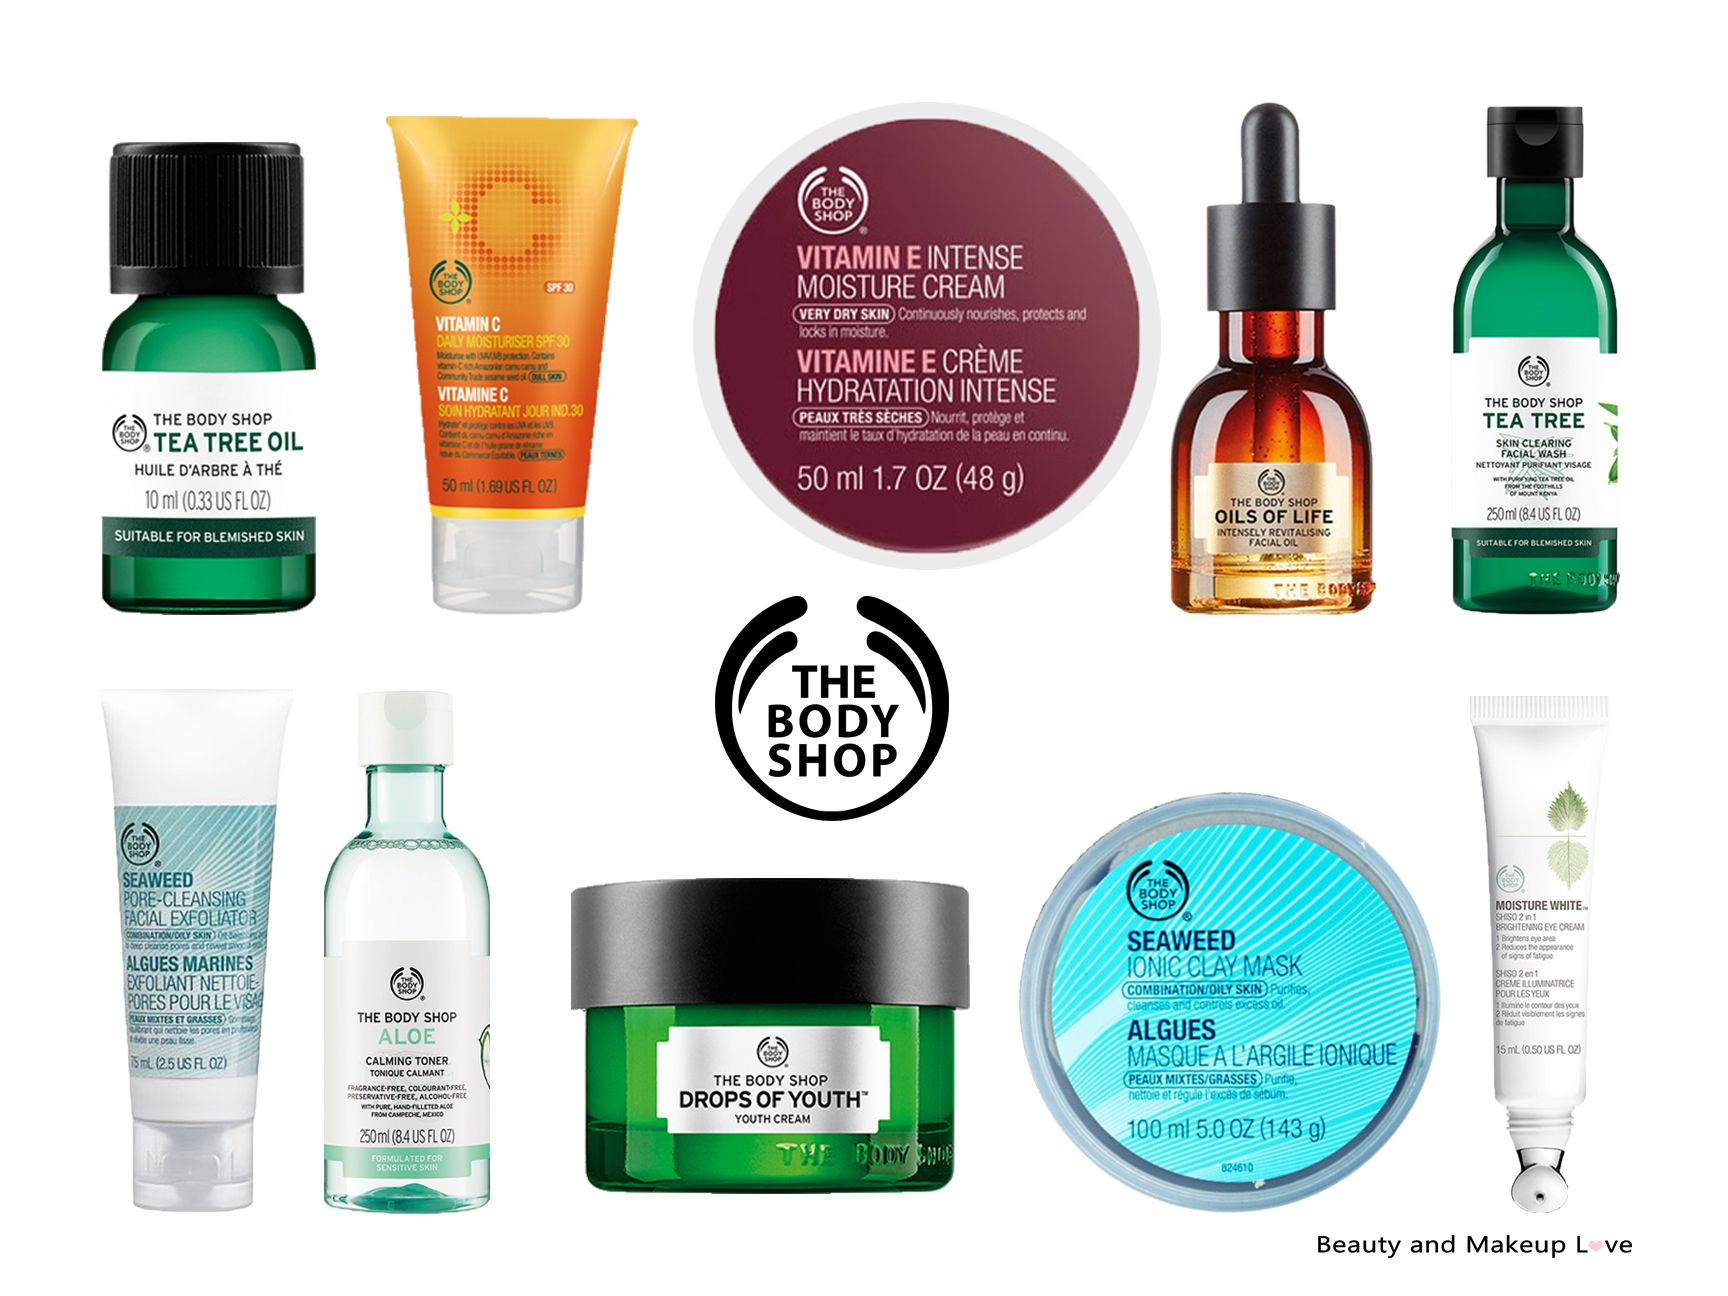 Best The Body Shop Skin Care Products Skin Care Shopping The Body Shop Body Shop Skincare